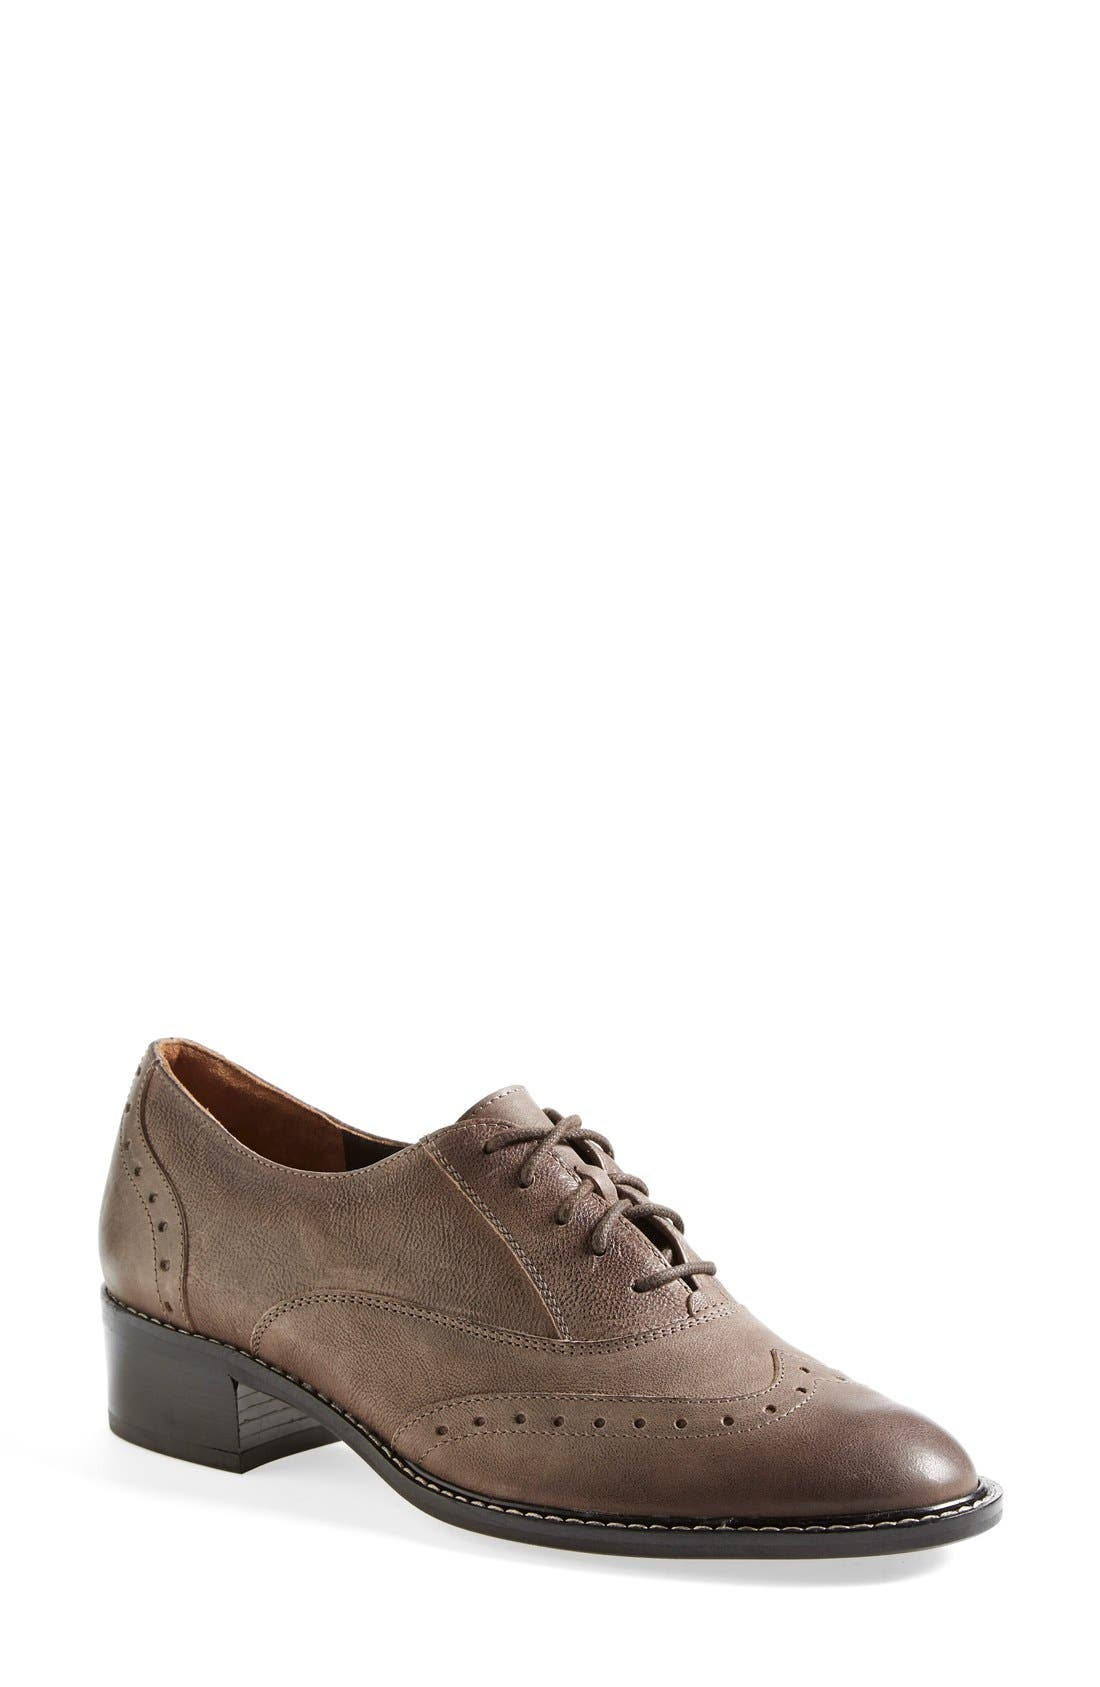 Alternate Image 1 Selected - Paul Green 'Addly' Wingtip Lace-Up (Women)